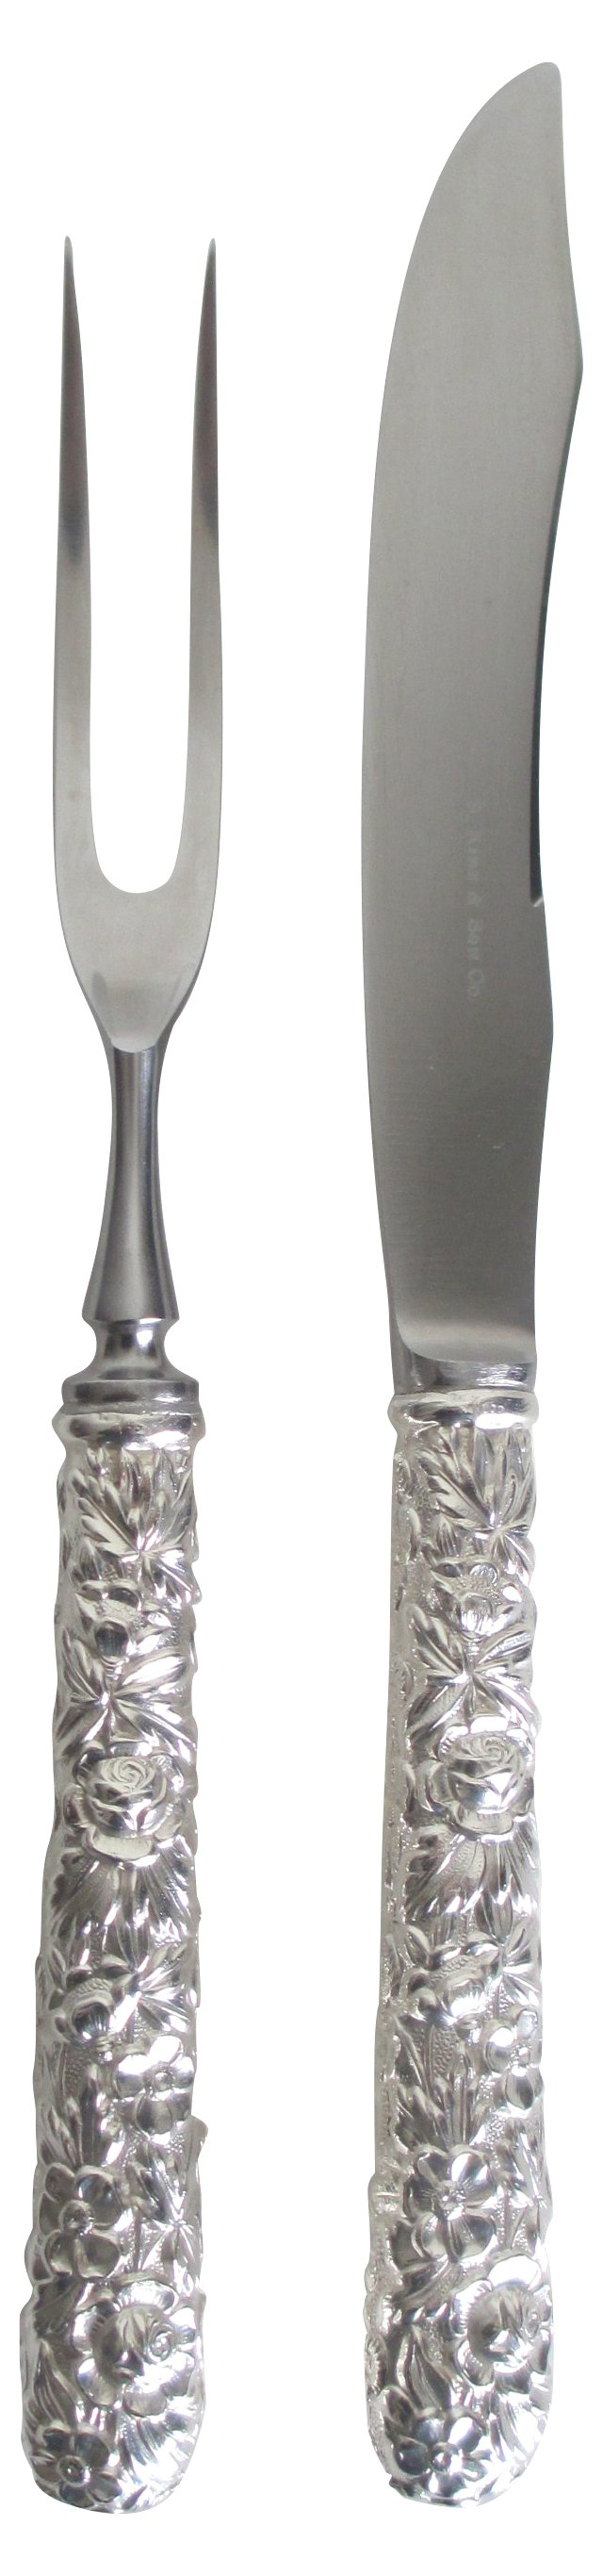 S.Kirk & Son Sterling Carving Set, 2 Pcs